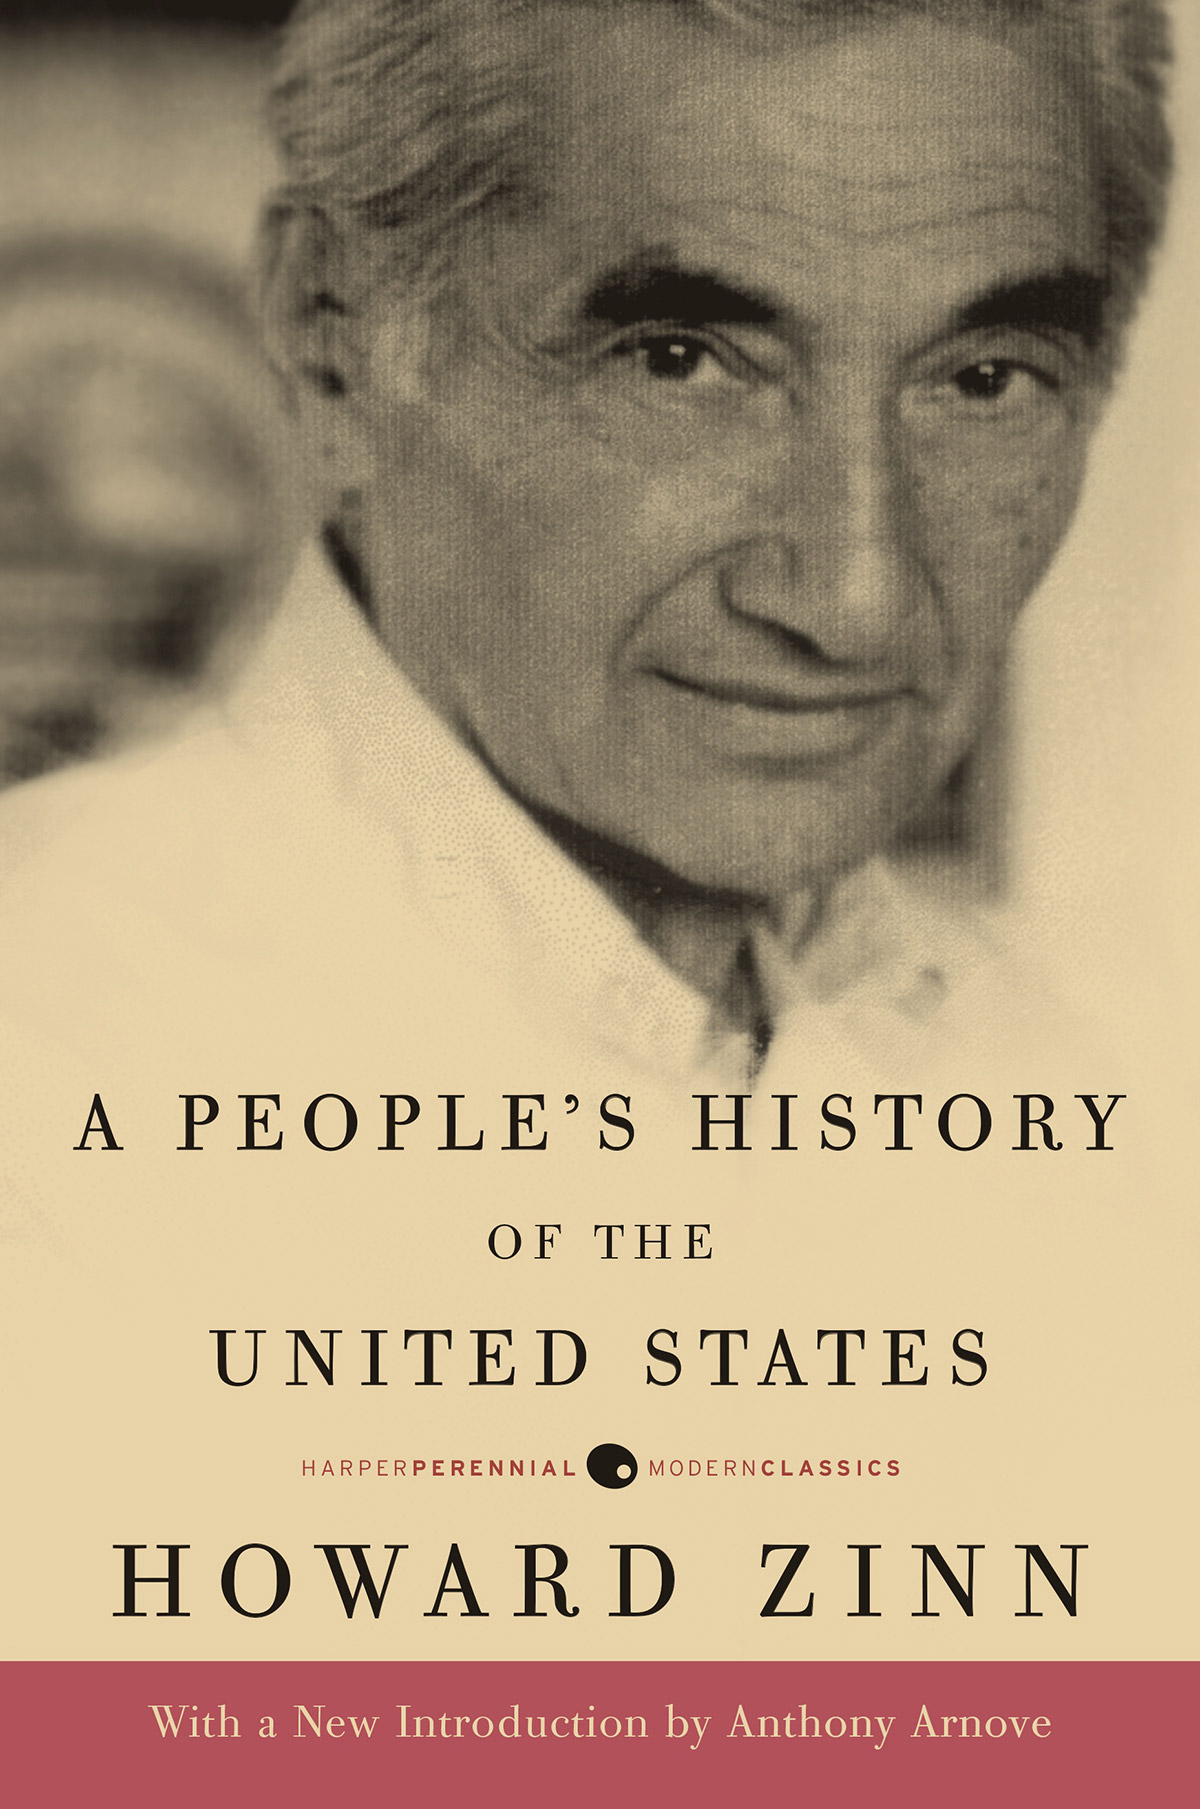 howard ninns philosophy of the united states history